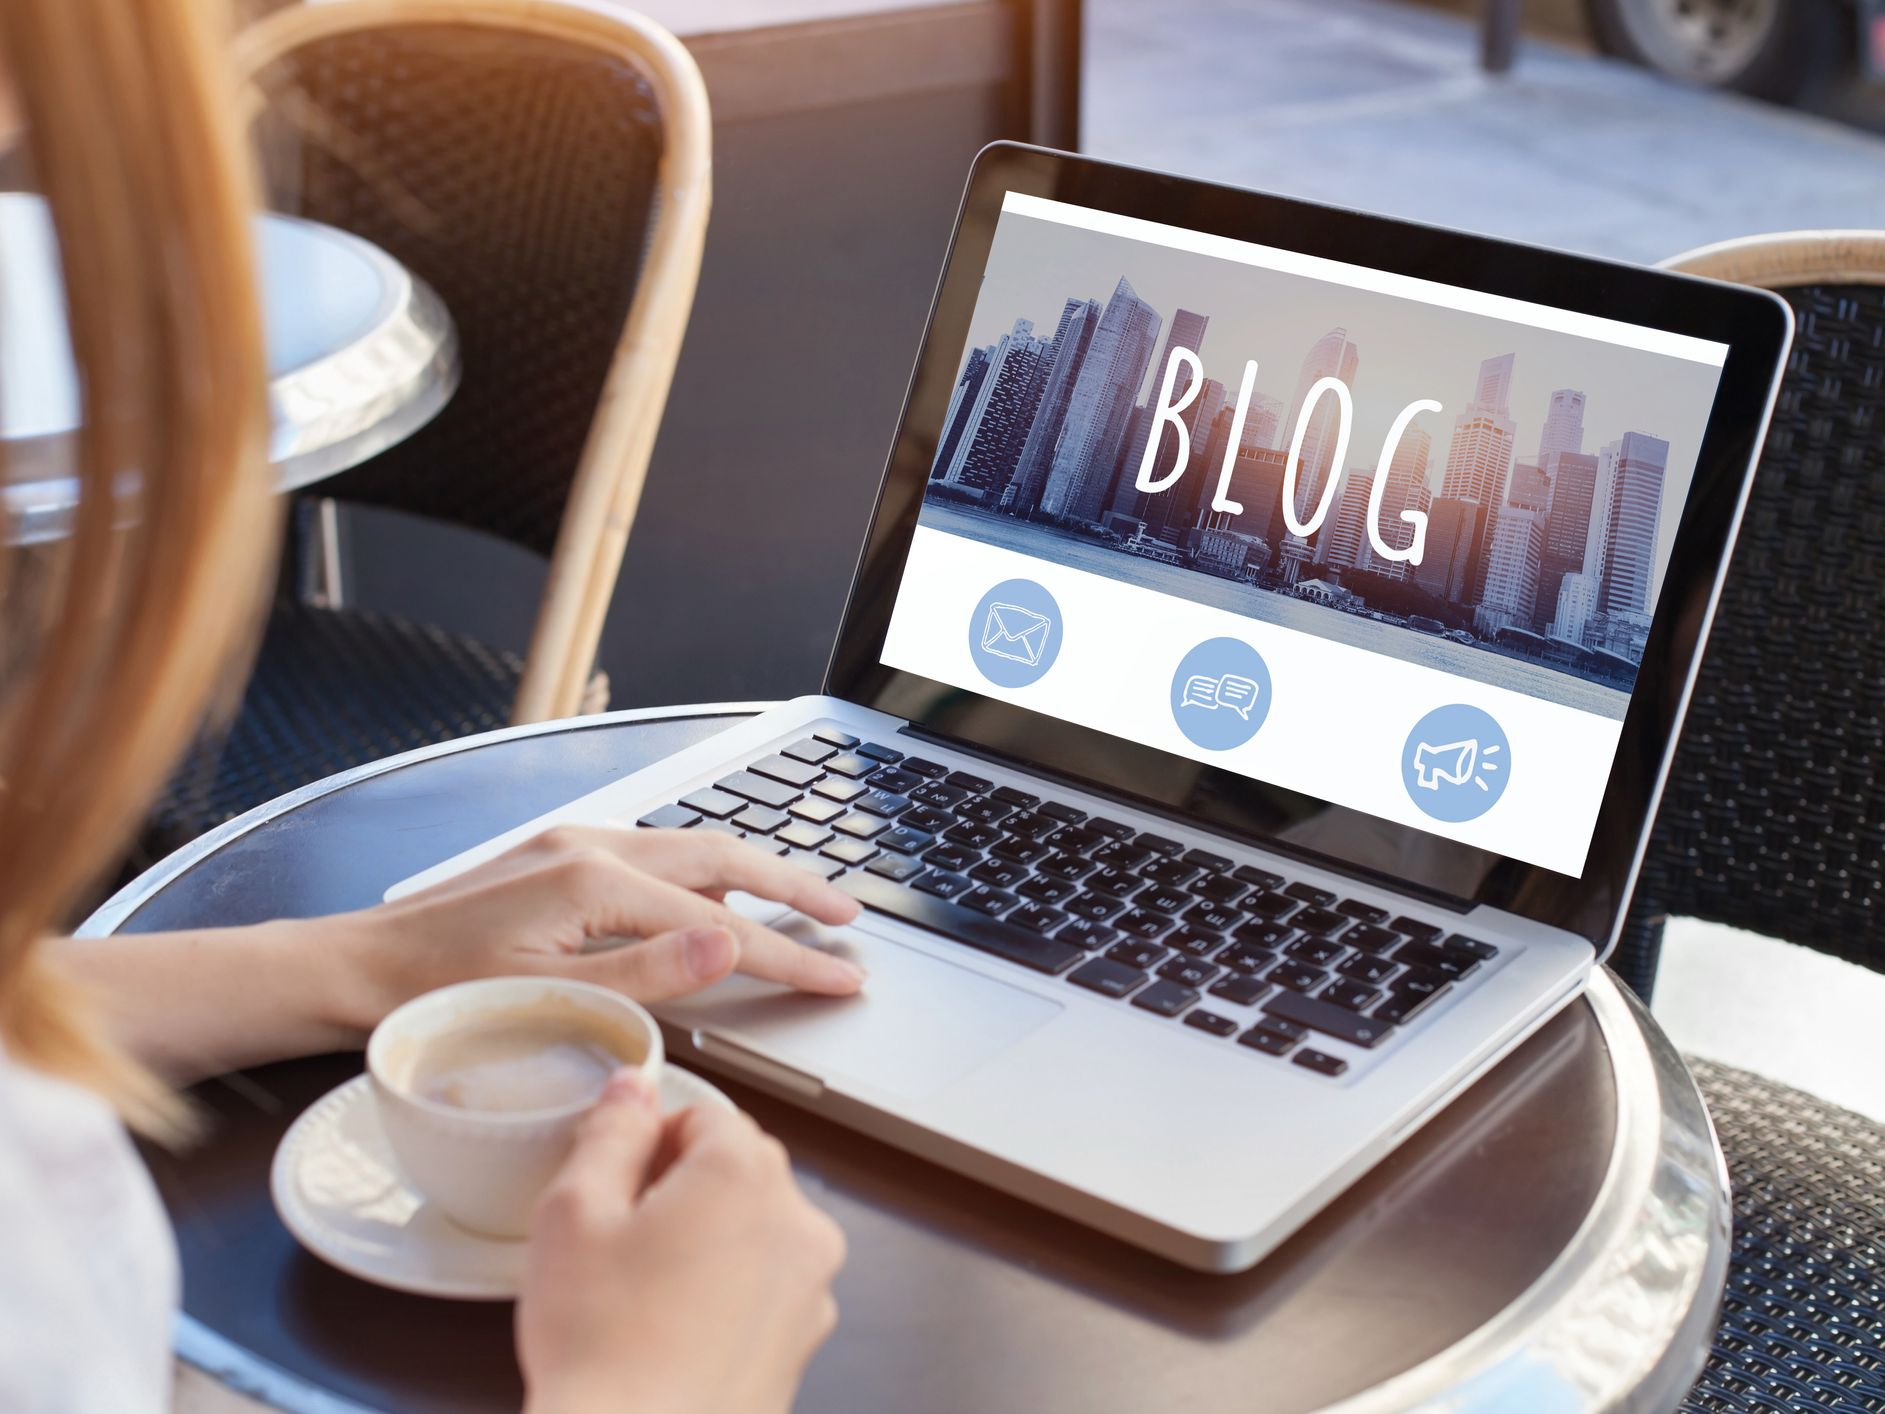 What is Blogging and How Can It Help My Home Business